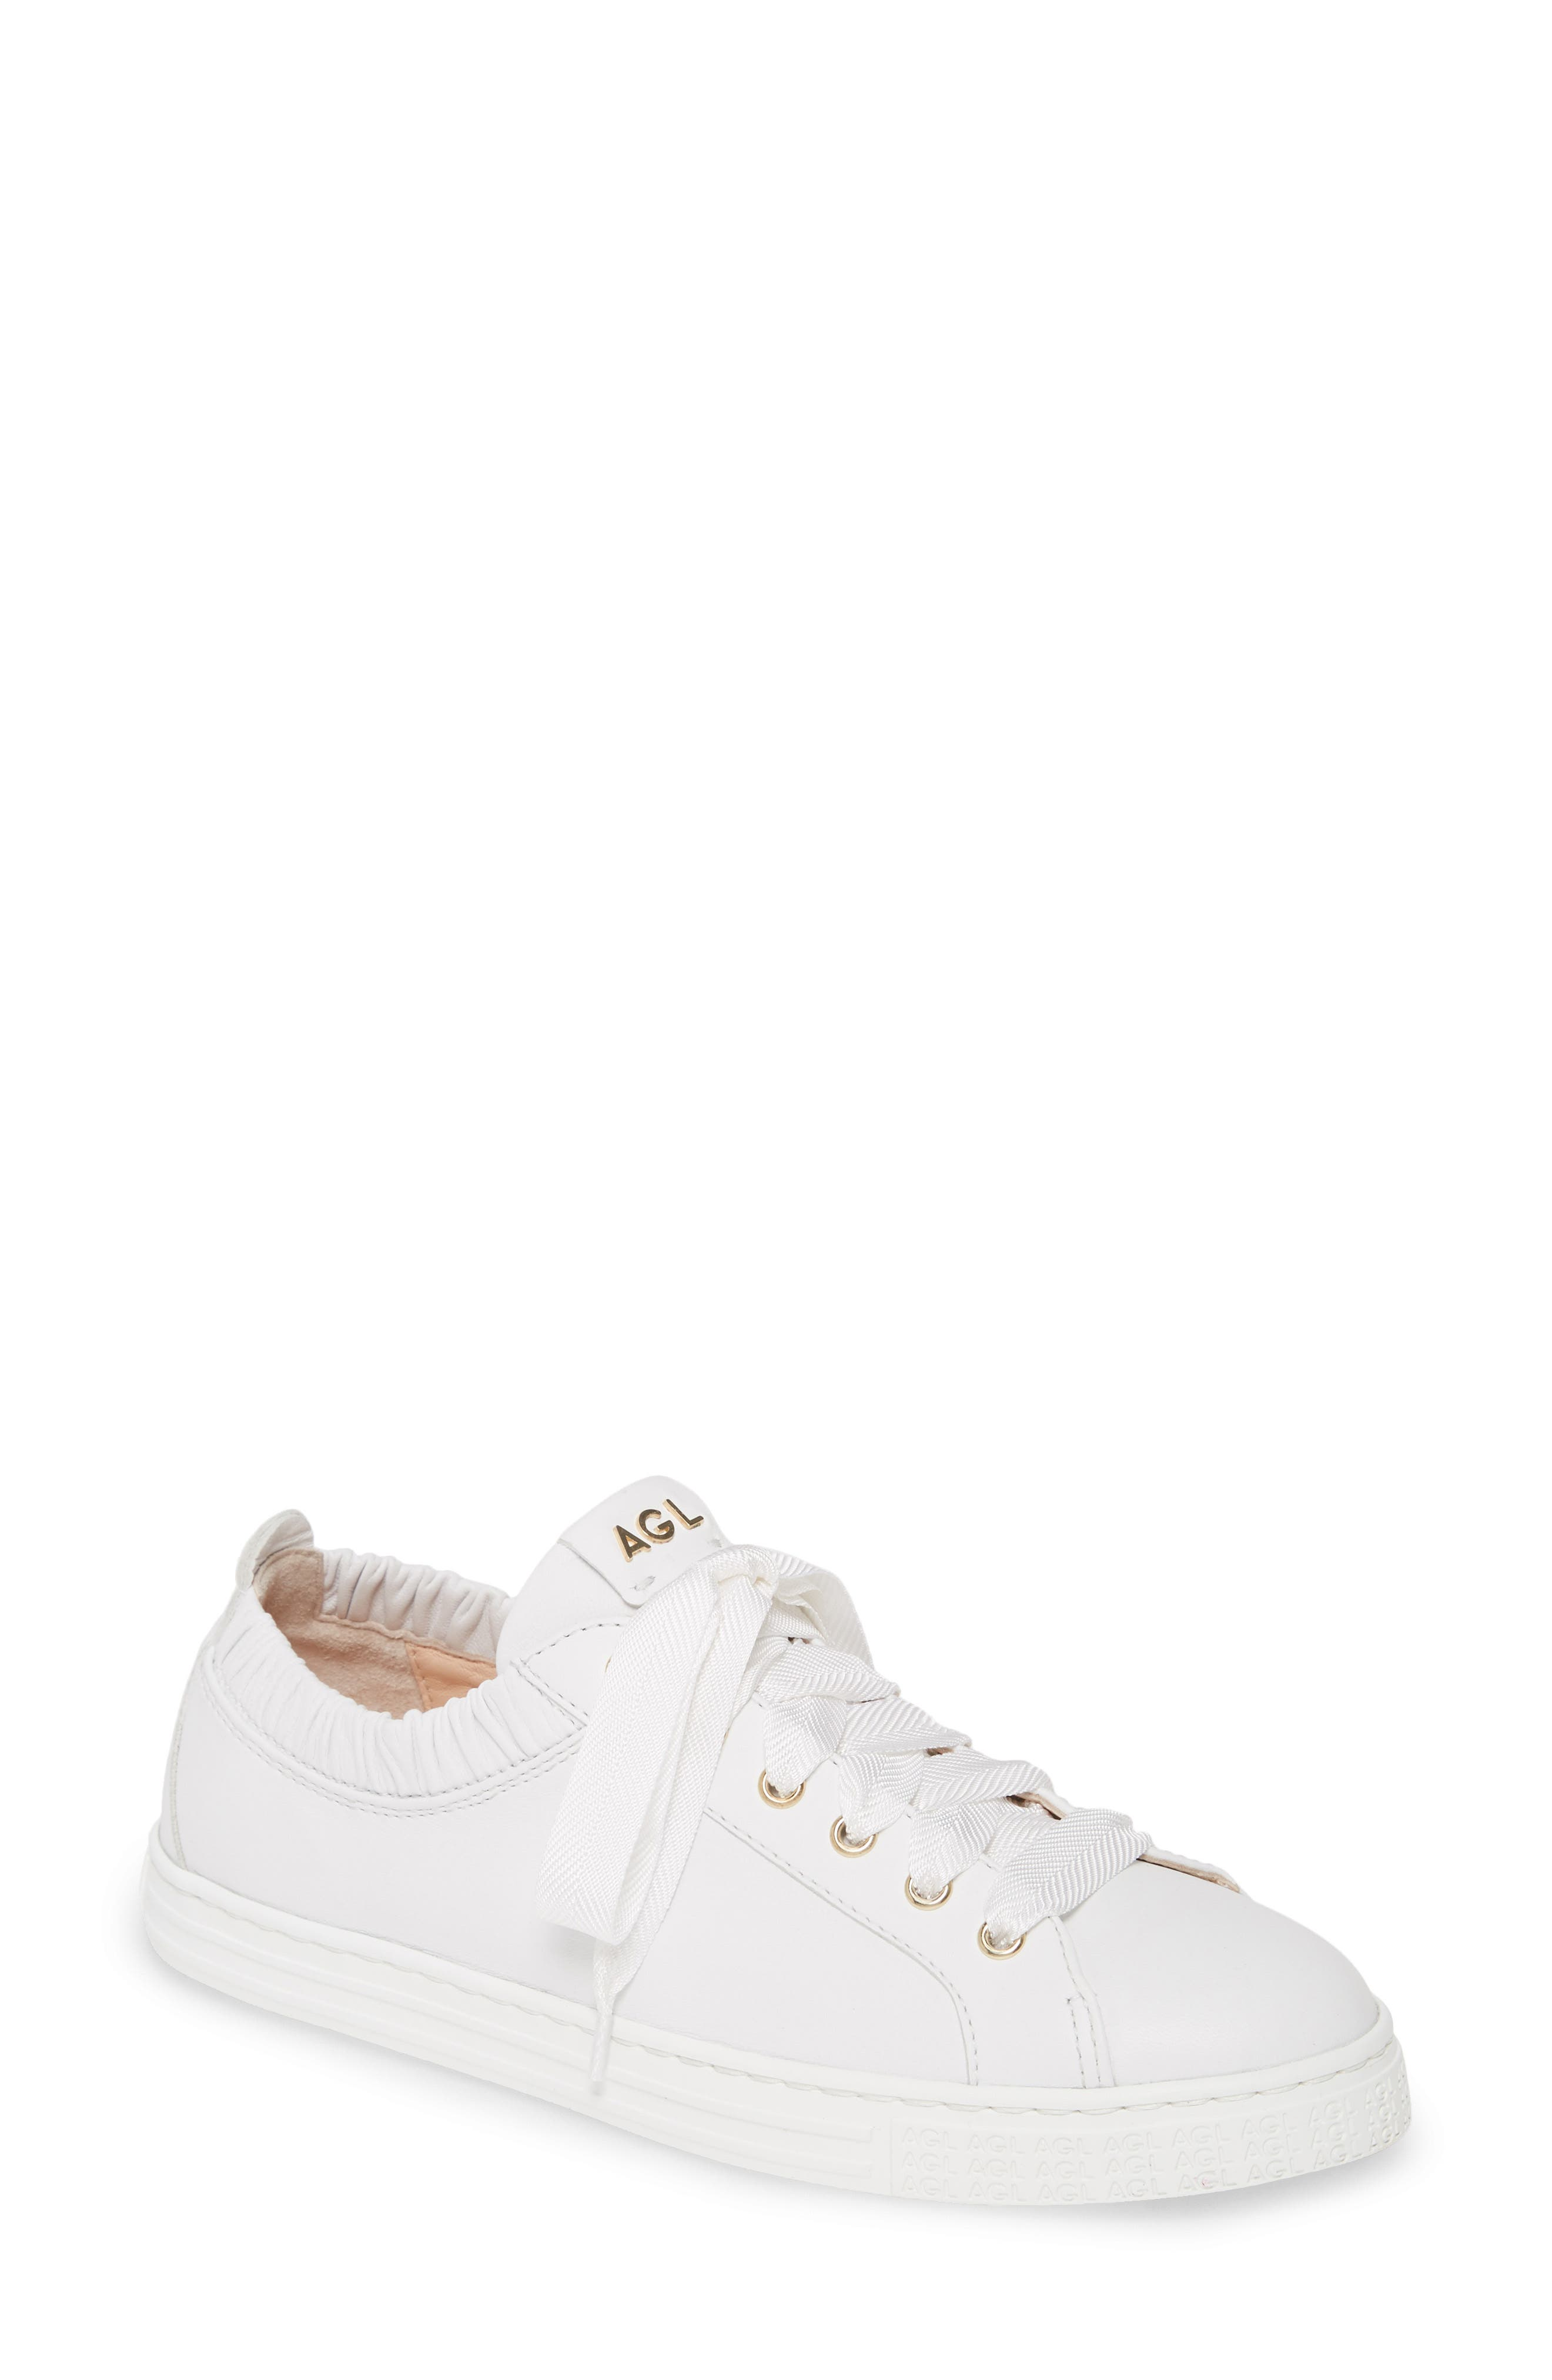 Grosgrain laces and a ruffled opening add to the feminine attitude of a supple leather sneaker grounded by a clean white cupsole. Style Name: Agl Ruffle Top Lace-Up Sneaker (Women). Style Number: 5957488. Available in stores.